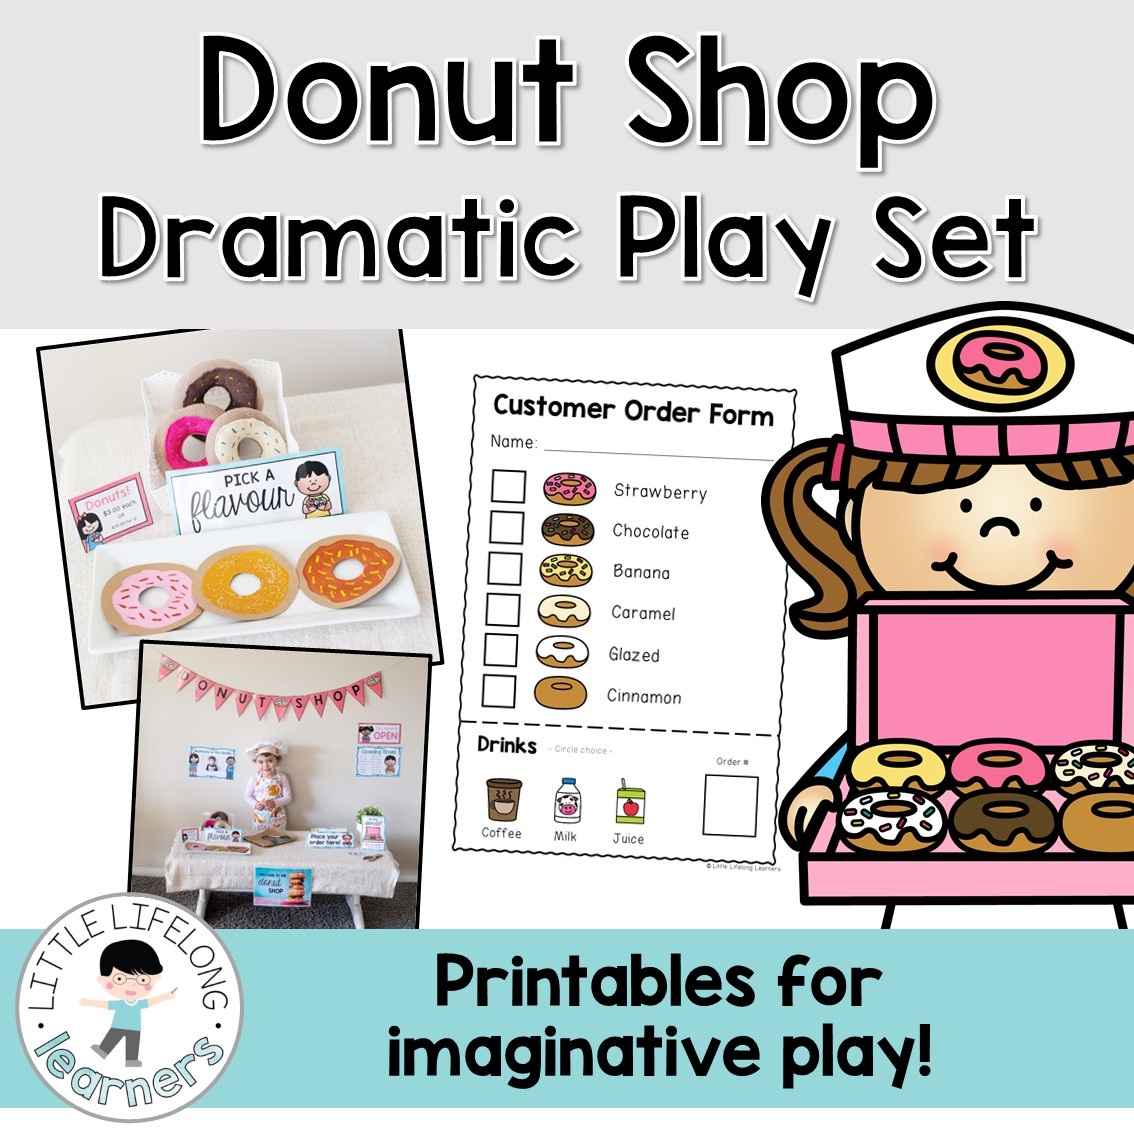 Donut Shop Dramatic Play Set | Printables for setting up your own imaginative play area | Posters, labels, signs and printables for play-based learning | Australian Prep and Foundation classroom resources |